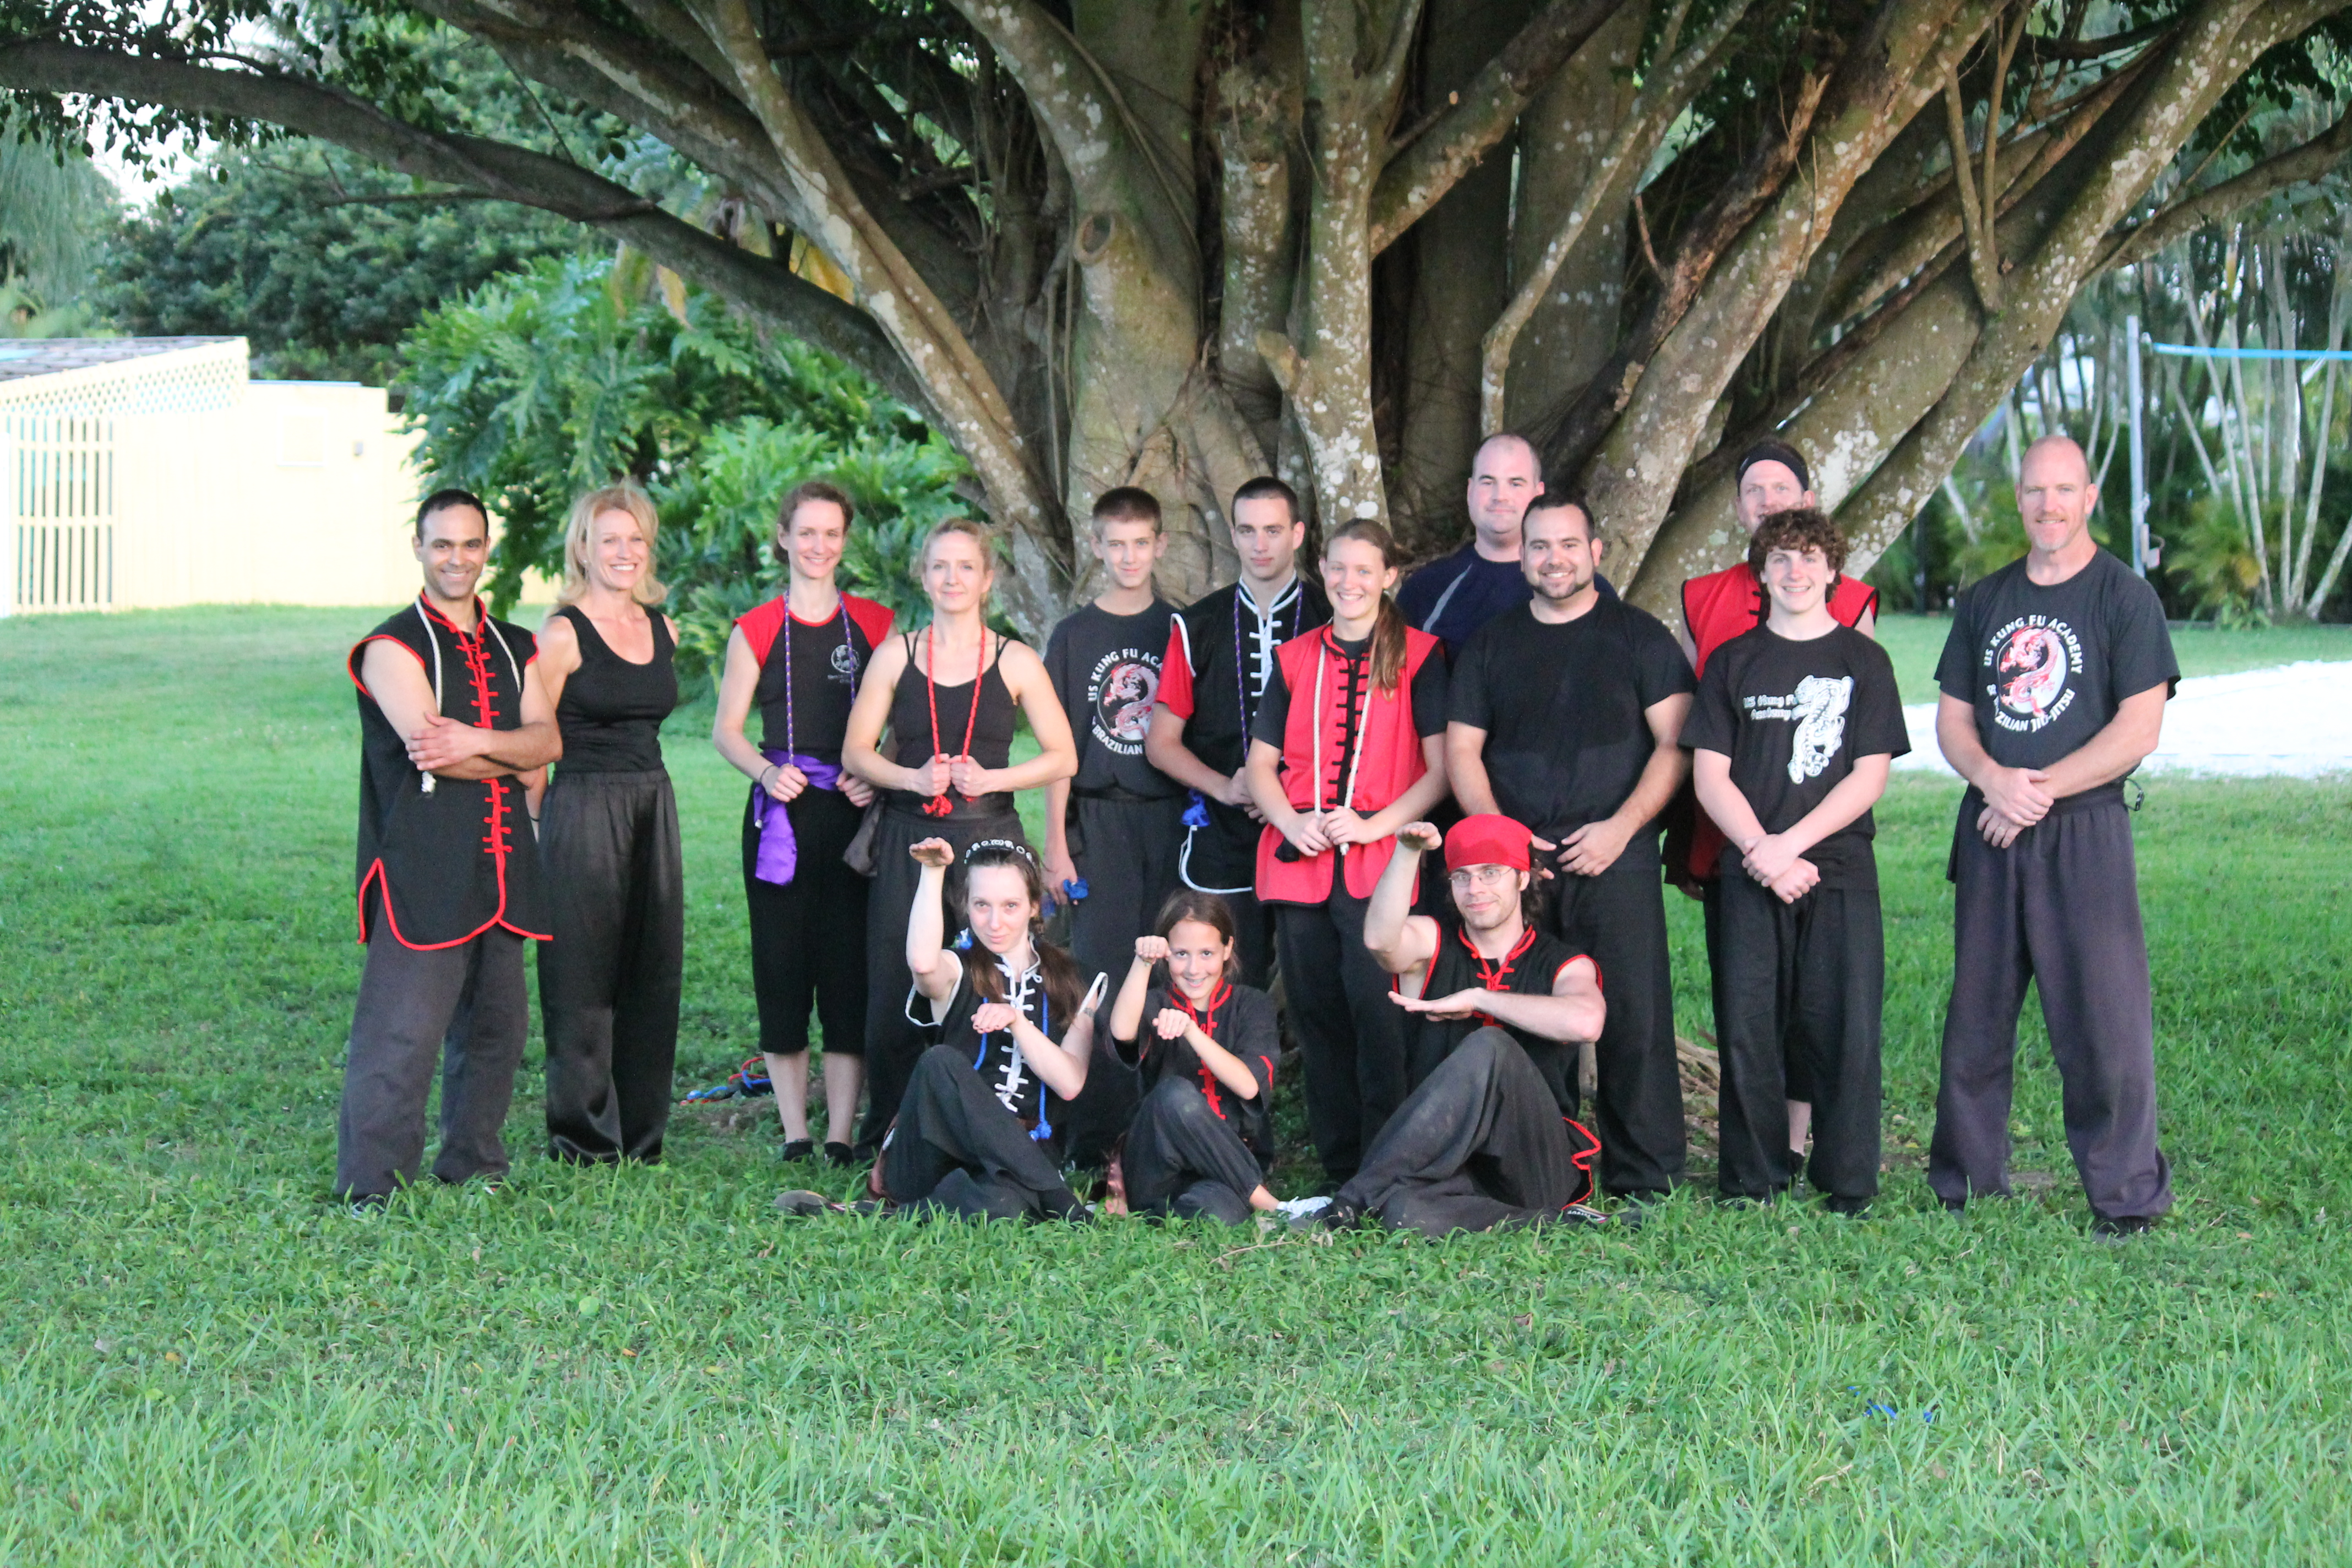 http://www.uskungfuacademy.com/wp-content/uploads/2012/03/02-Group-Photo.jpg